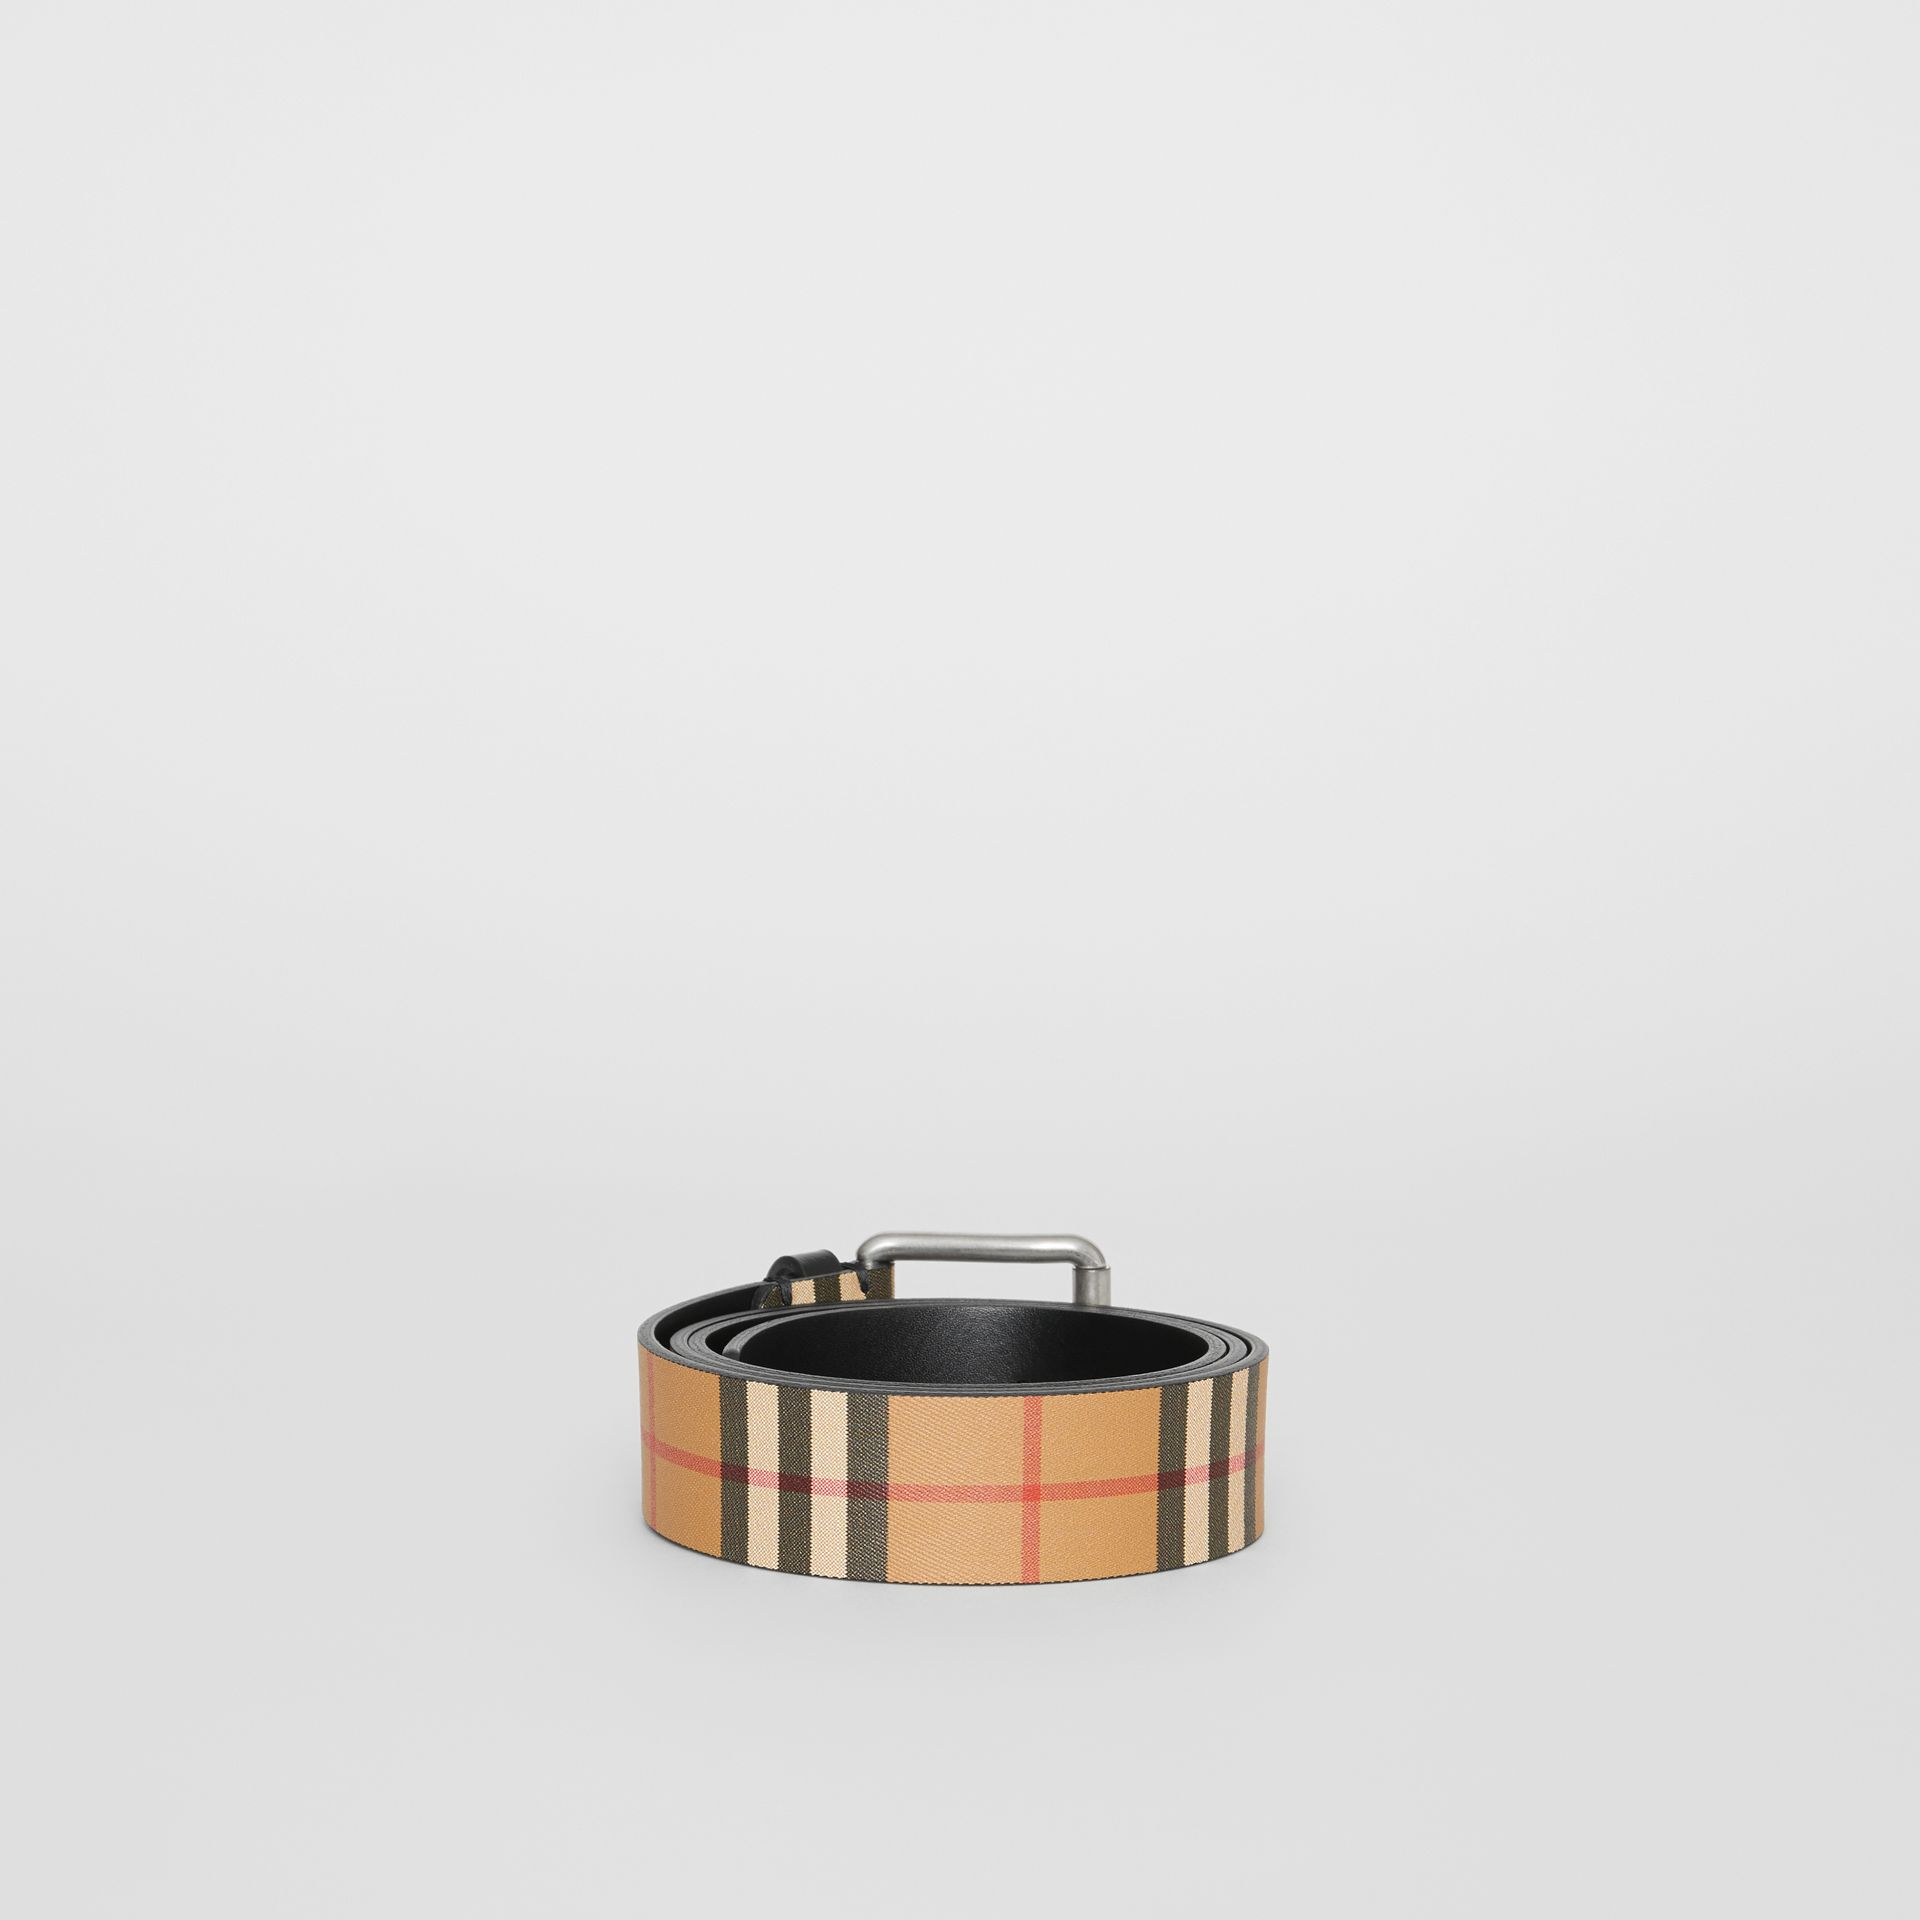 Vintage Check Leather Belt in Black - Men | Burberry Australia - gallery image 4